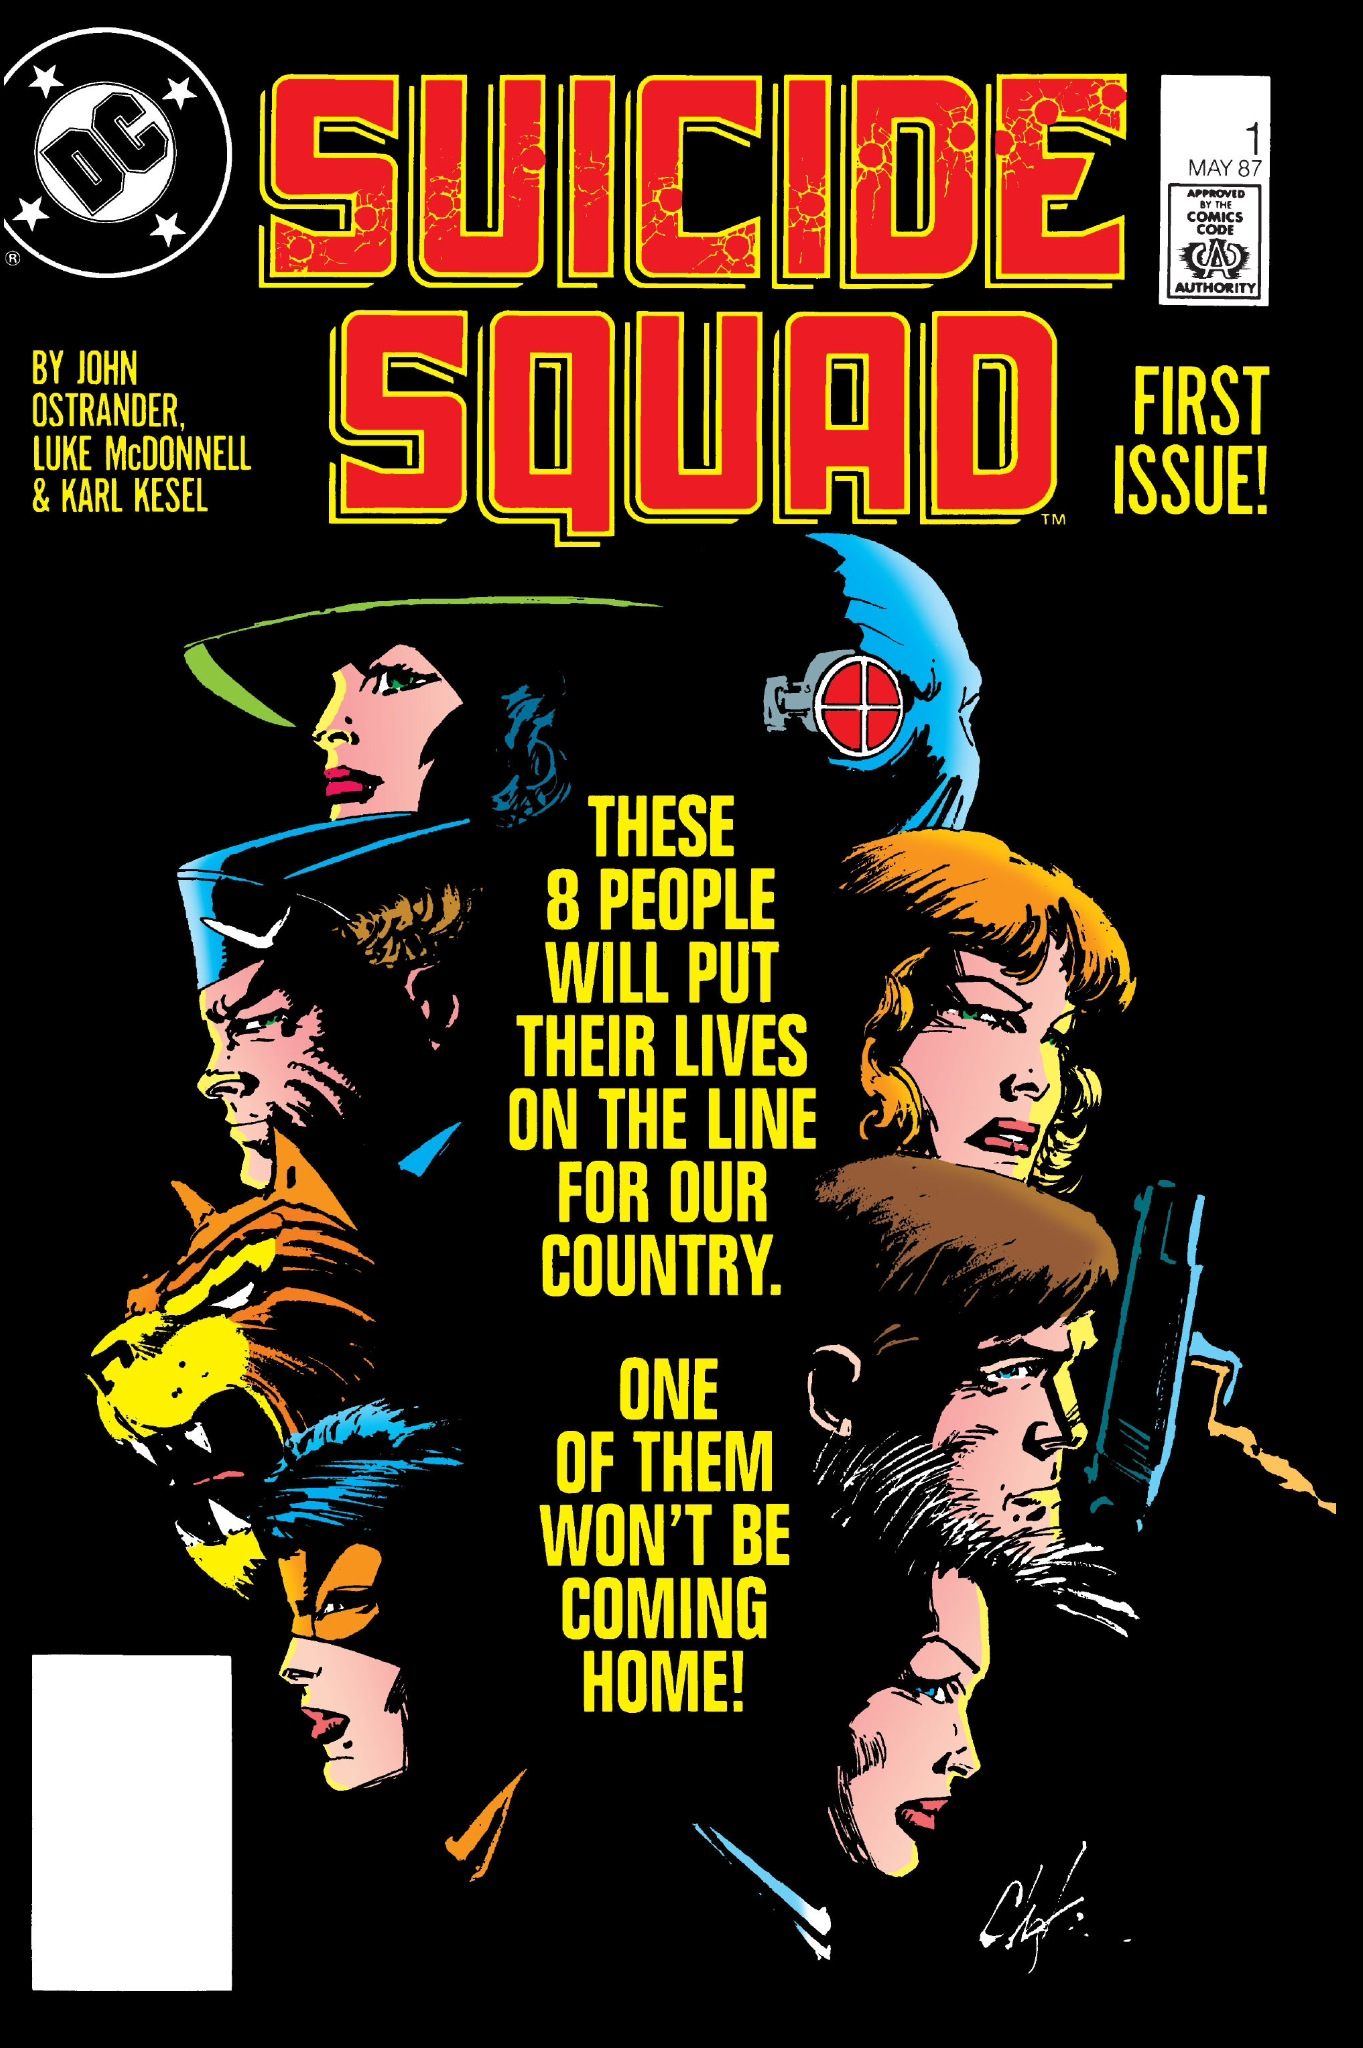 John Ostrander Reviews 'Suicide Squad' Dark Knight News